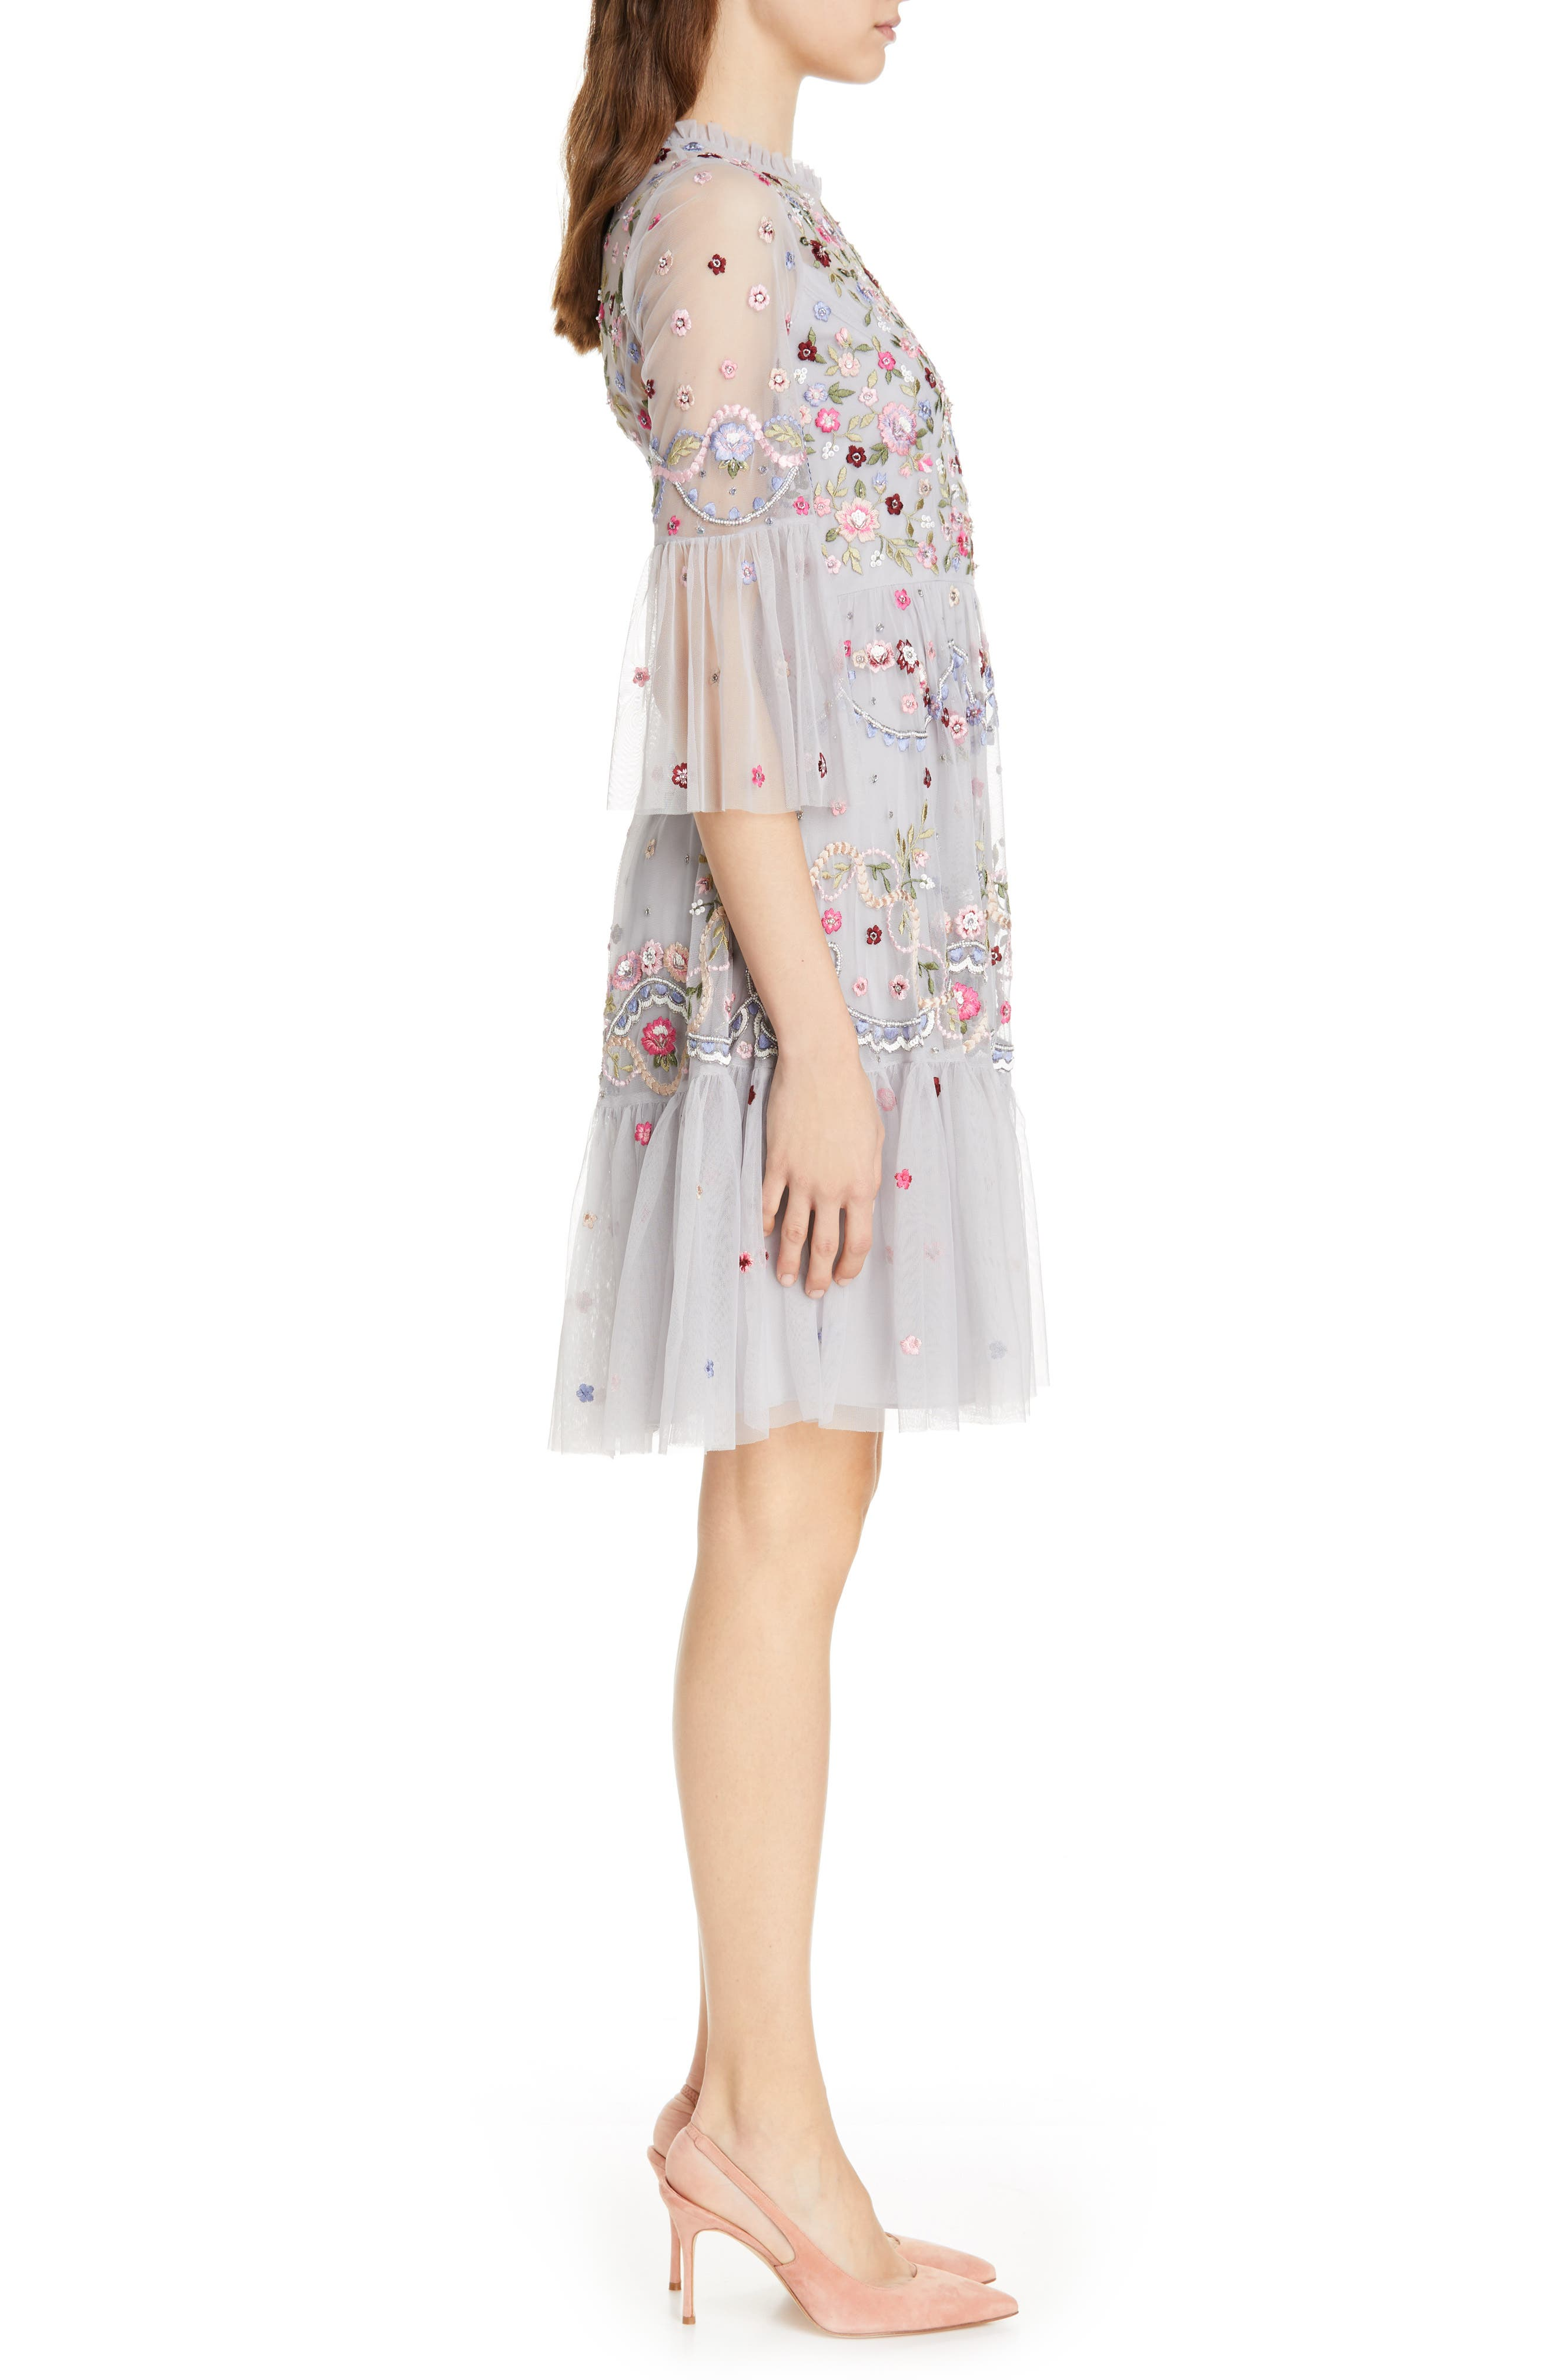 NEEDLE & THREAD,                             Dreamers Embroidered Tulle Dress,                             Alternate thumbnail 3, color,                             DUSK BLUE